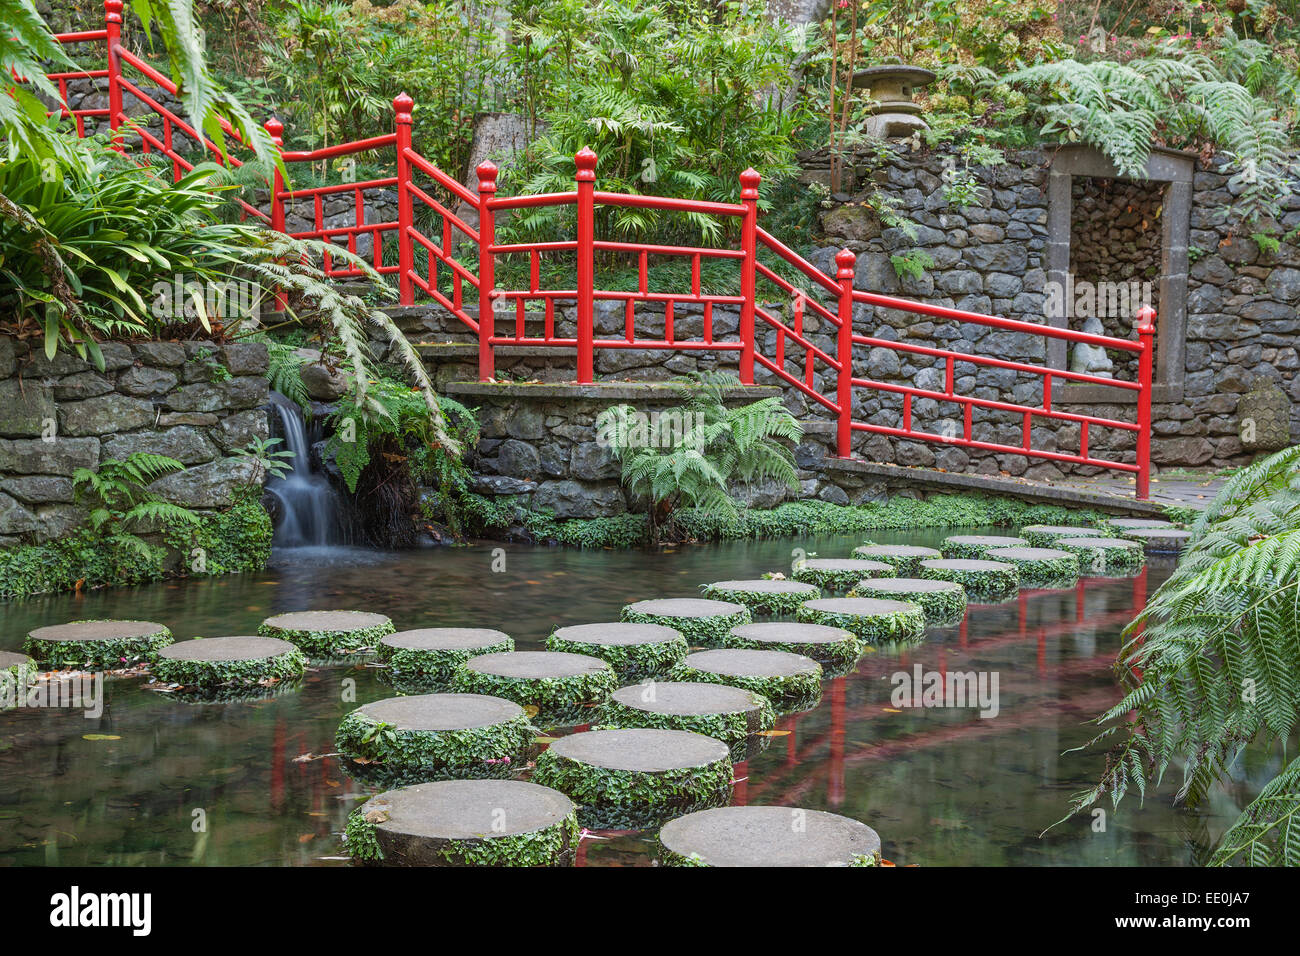 Stepping stones across oriental style lake - Monte Palace Gardens, Funchal - Stock Image